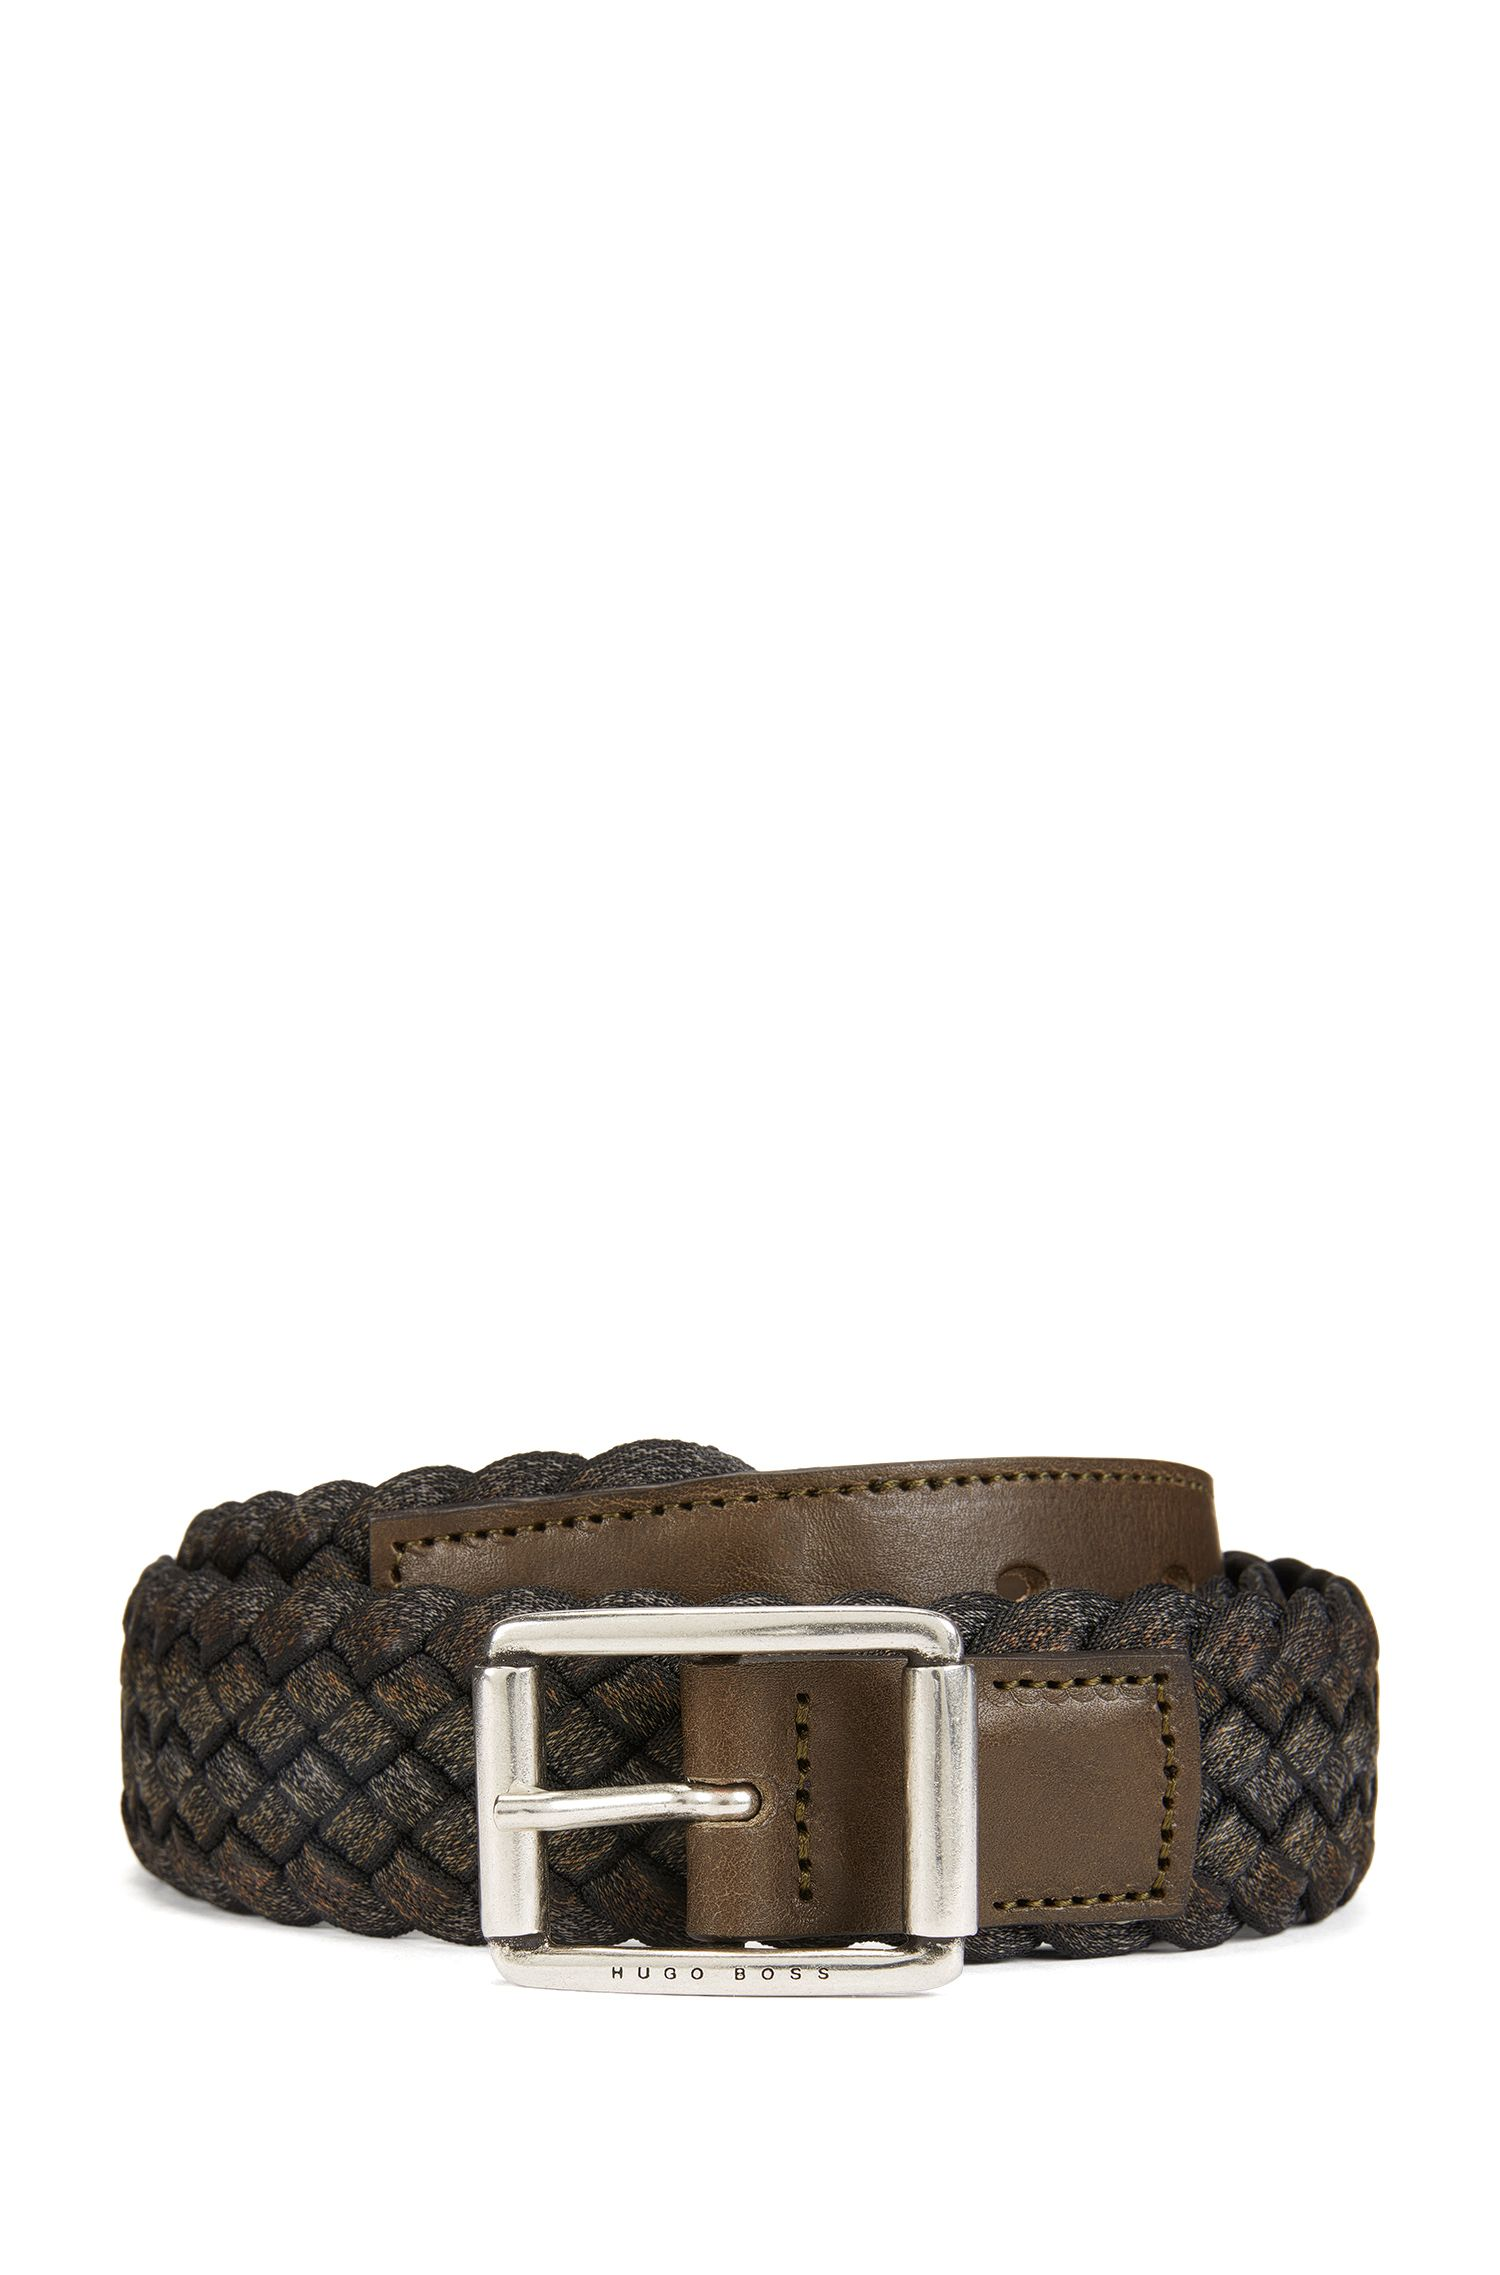 Woven multi-tonal textile belt with leather trim